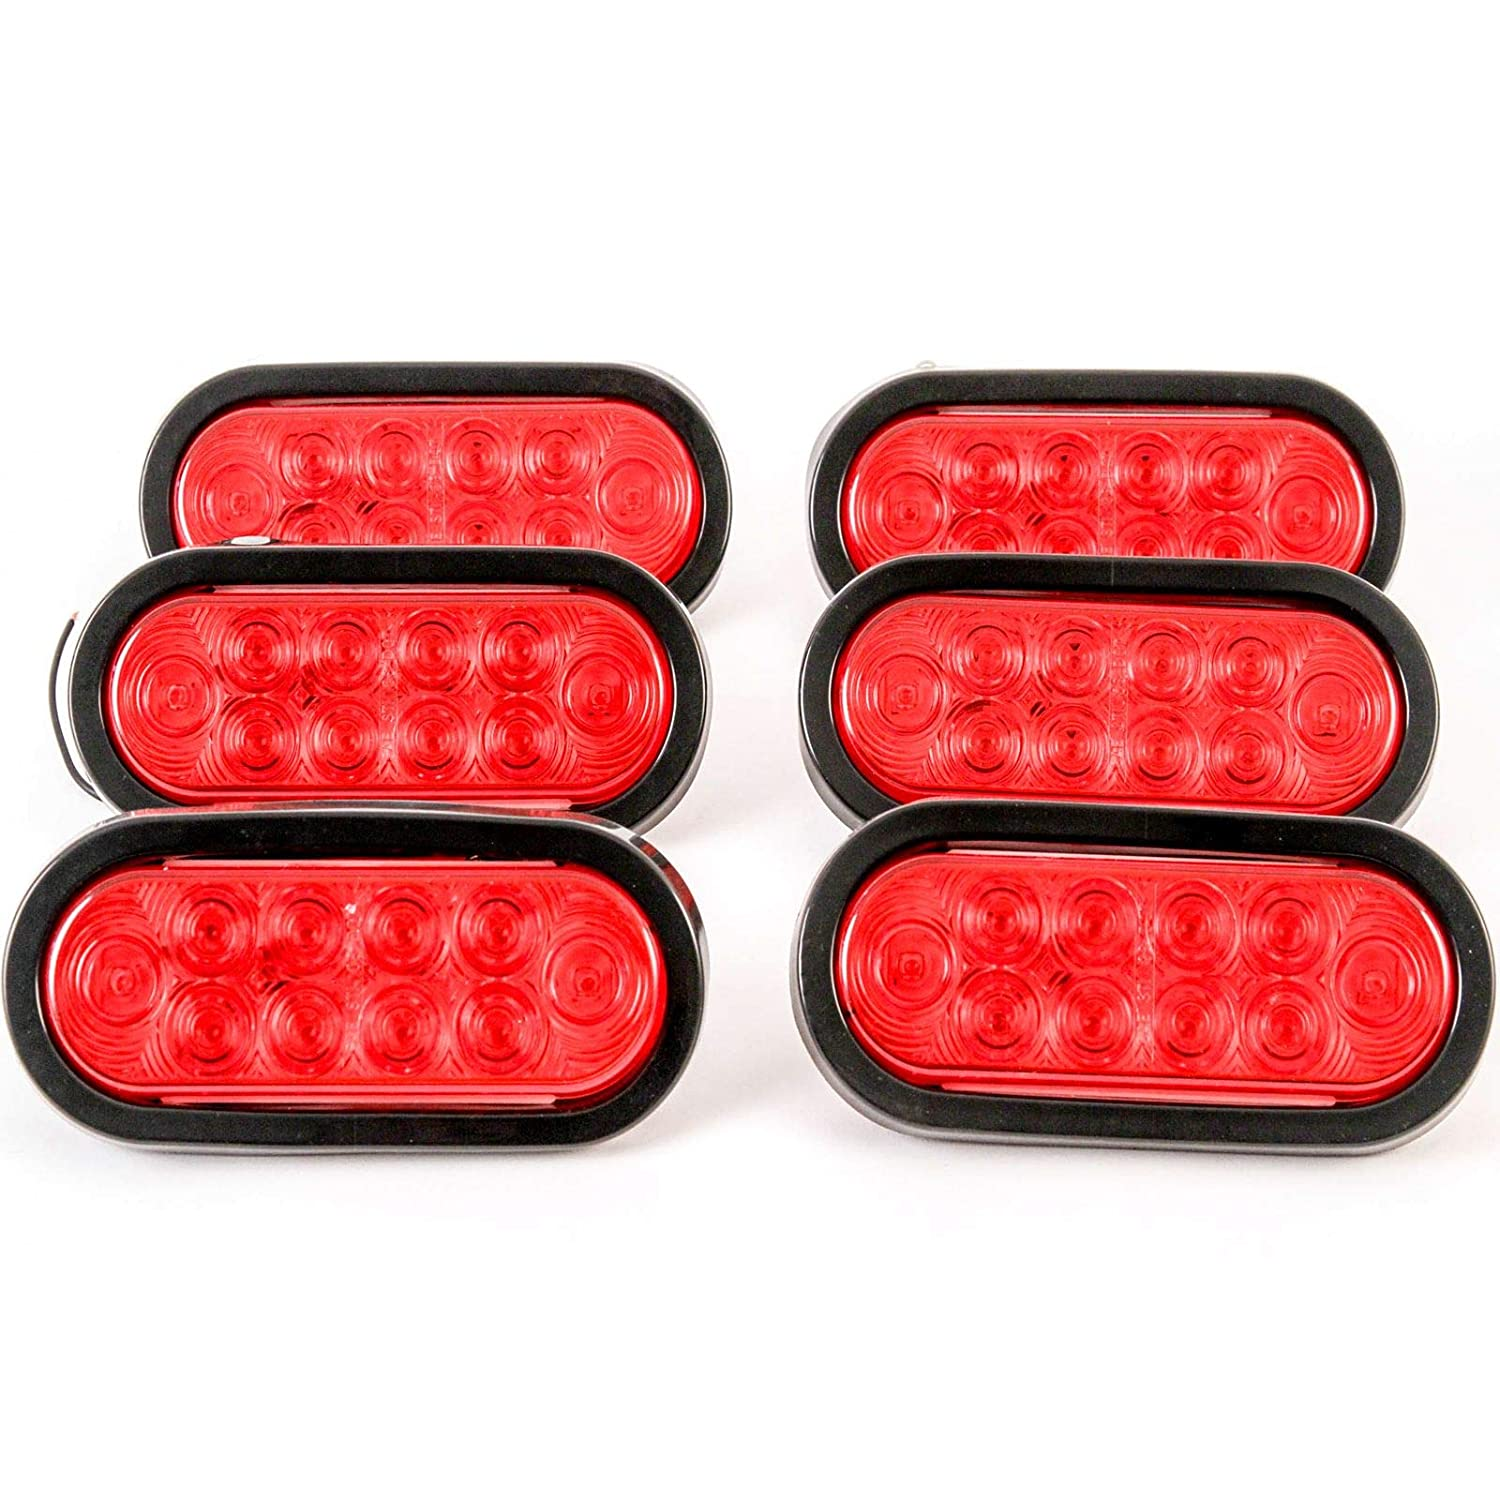 2 Trailer Truck LED Sealed RED 6 Oval Stop//Turn//Tail Light Marine Waterproof Bus RV Semi Tractor Shuttle Red Hound Auto